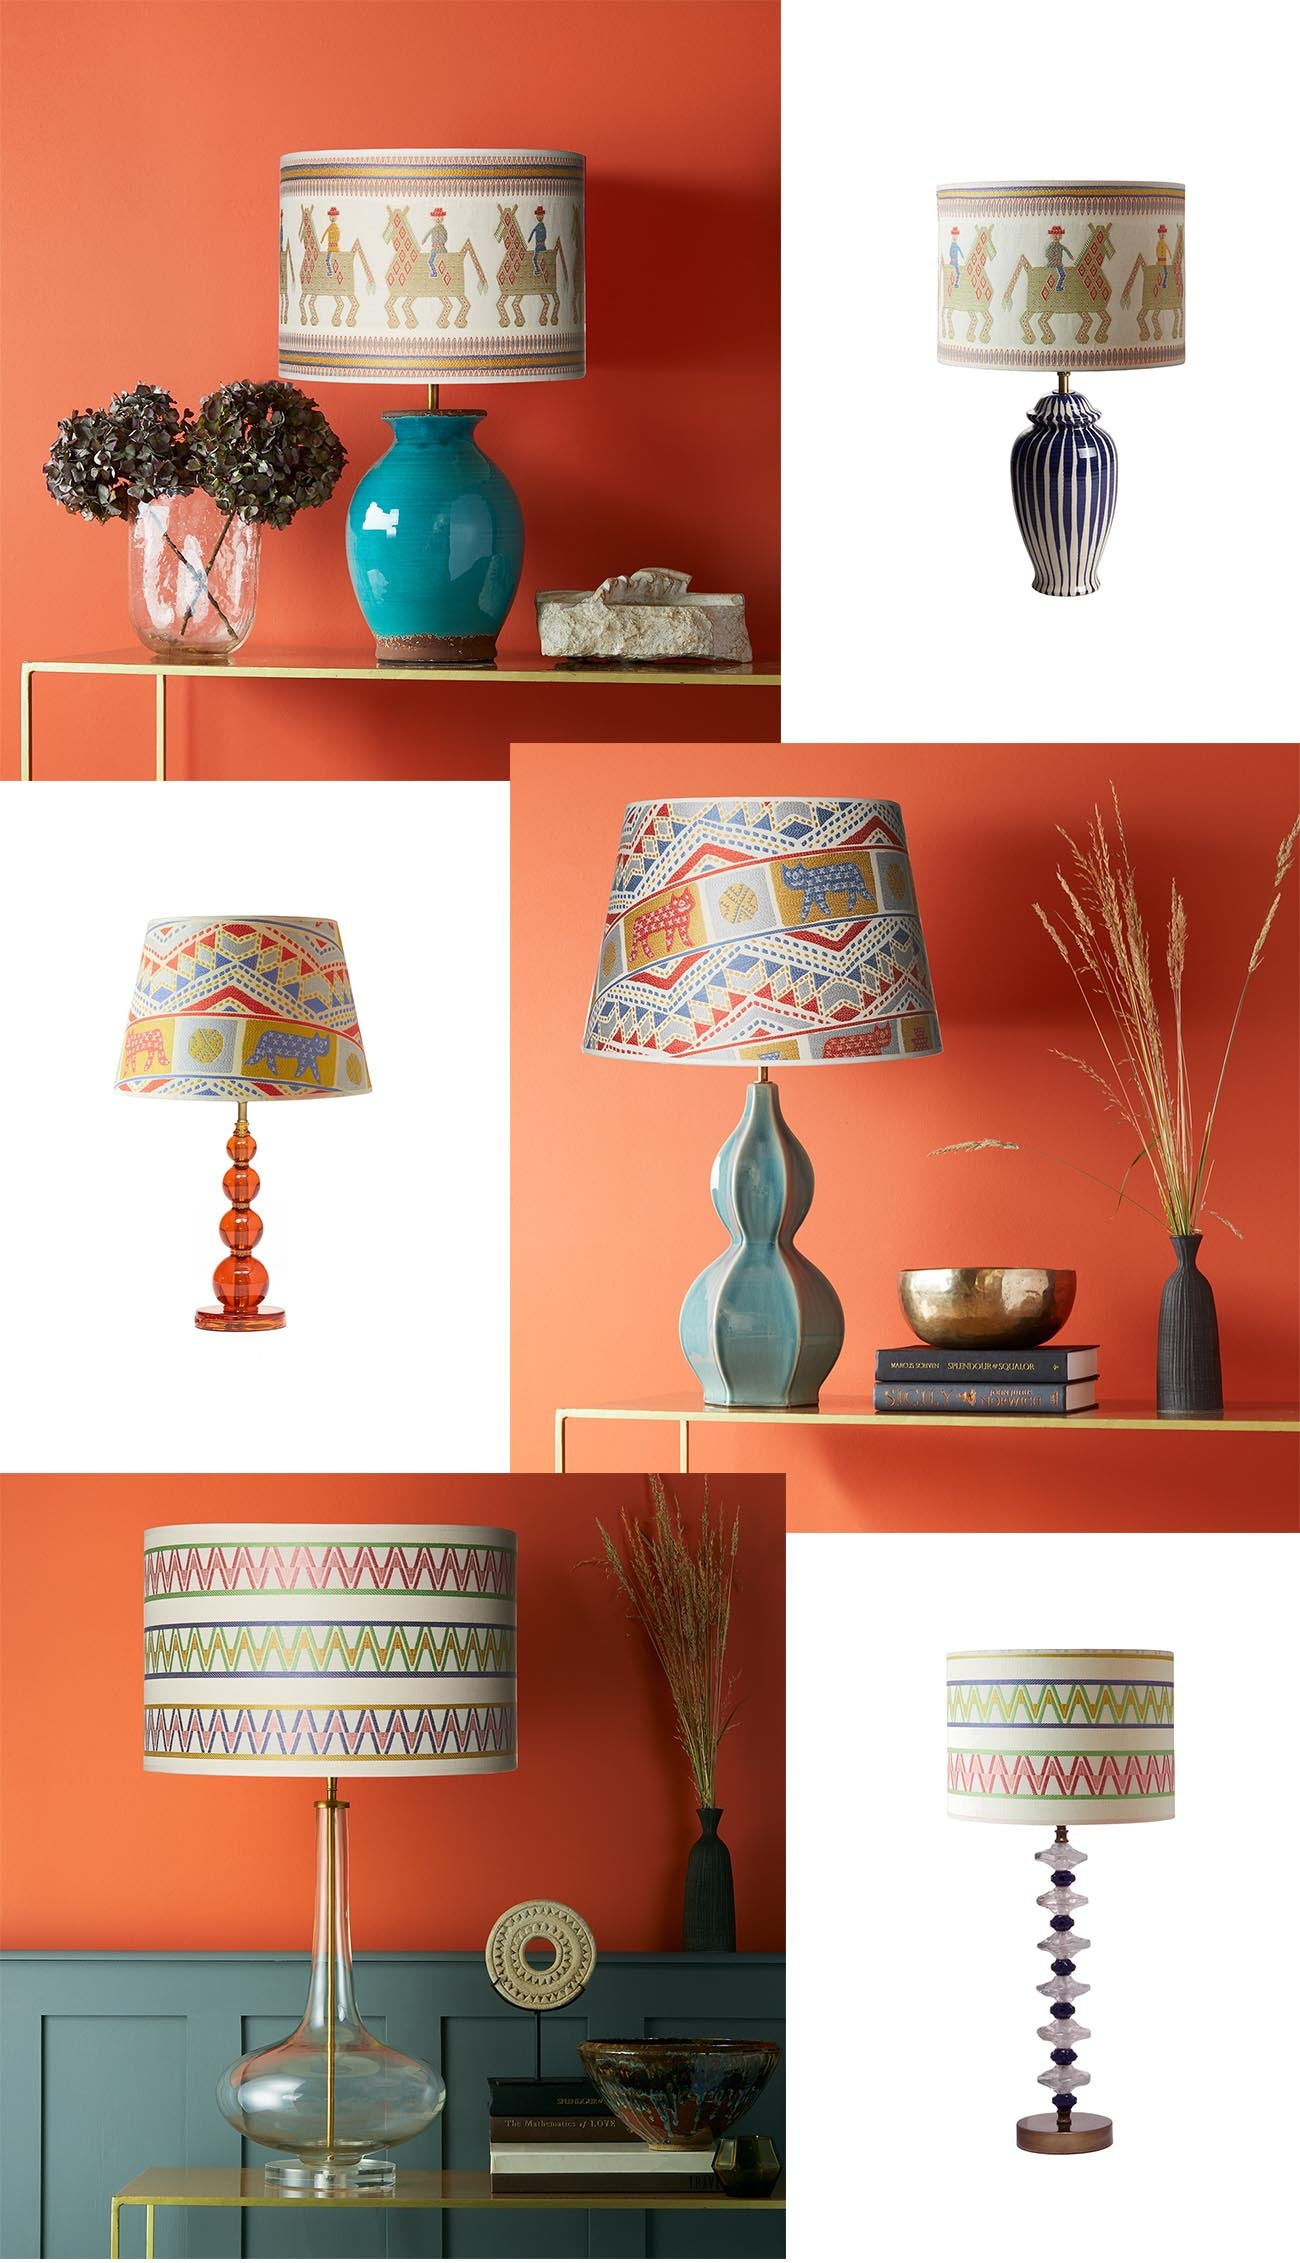 Wicklewood X Pooky lampshade collaboration - bright bold and colourful lampshades for your home